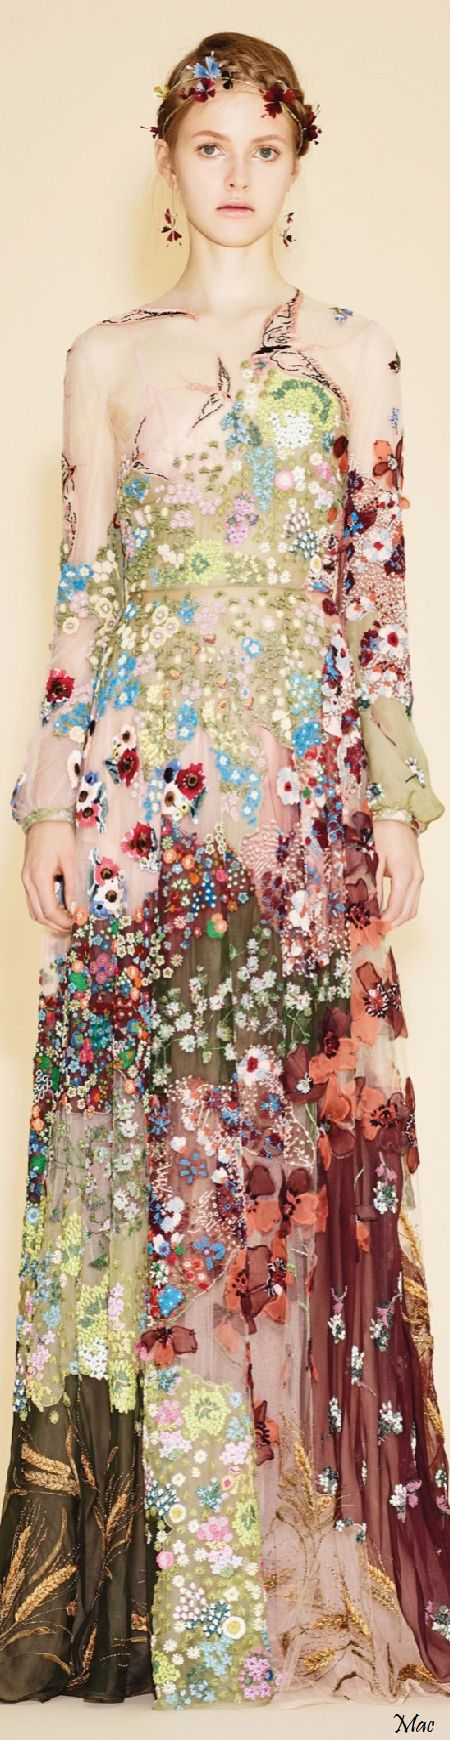 Resort 2016 Valentino looks like the woman in Gustav Klimt's The Kiss.Just can I say - it is amazing.